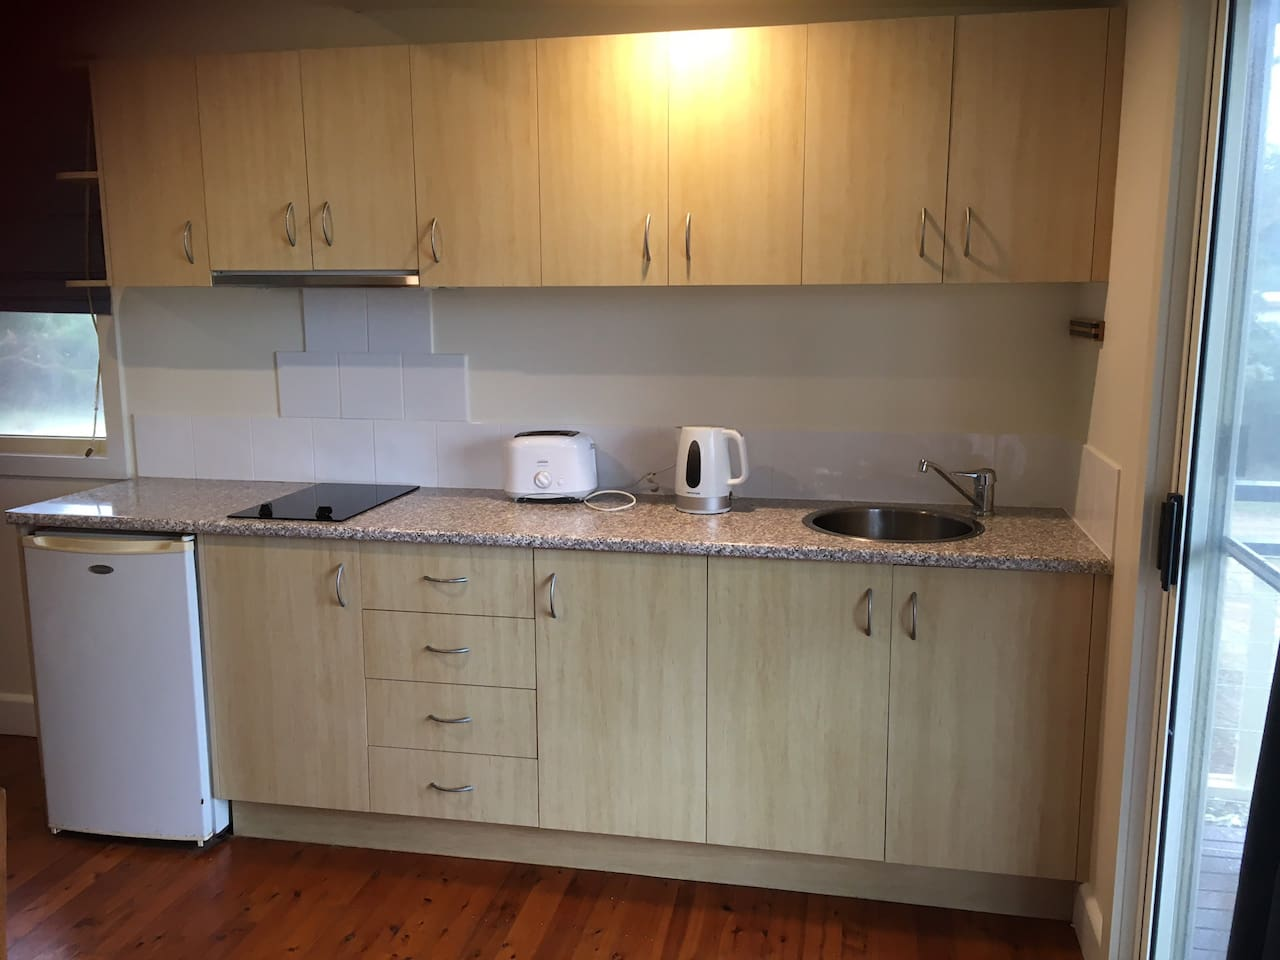 Kitchenette.  The cooktop has been disconnected due to council regulations.